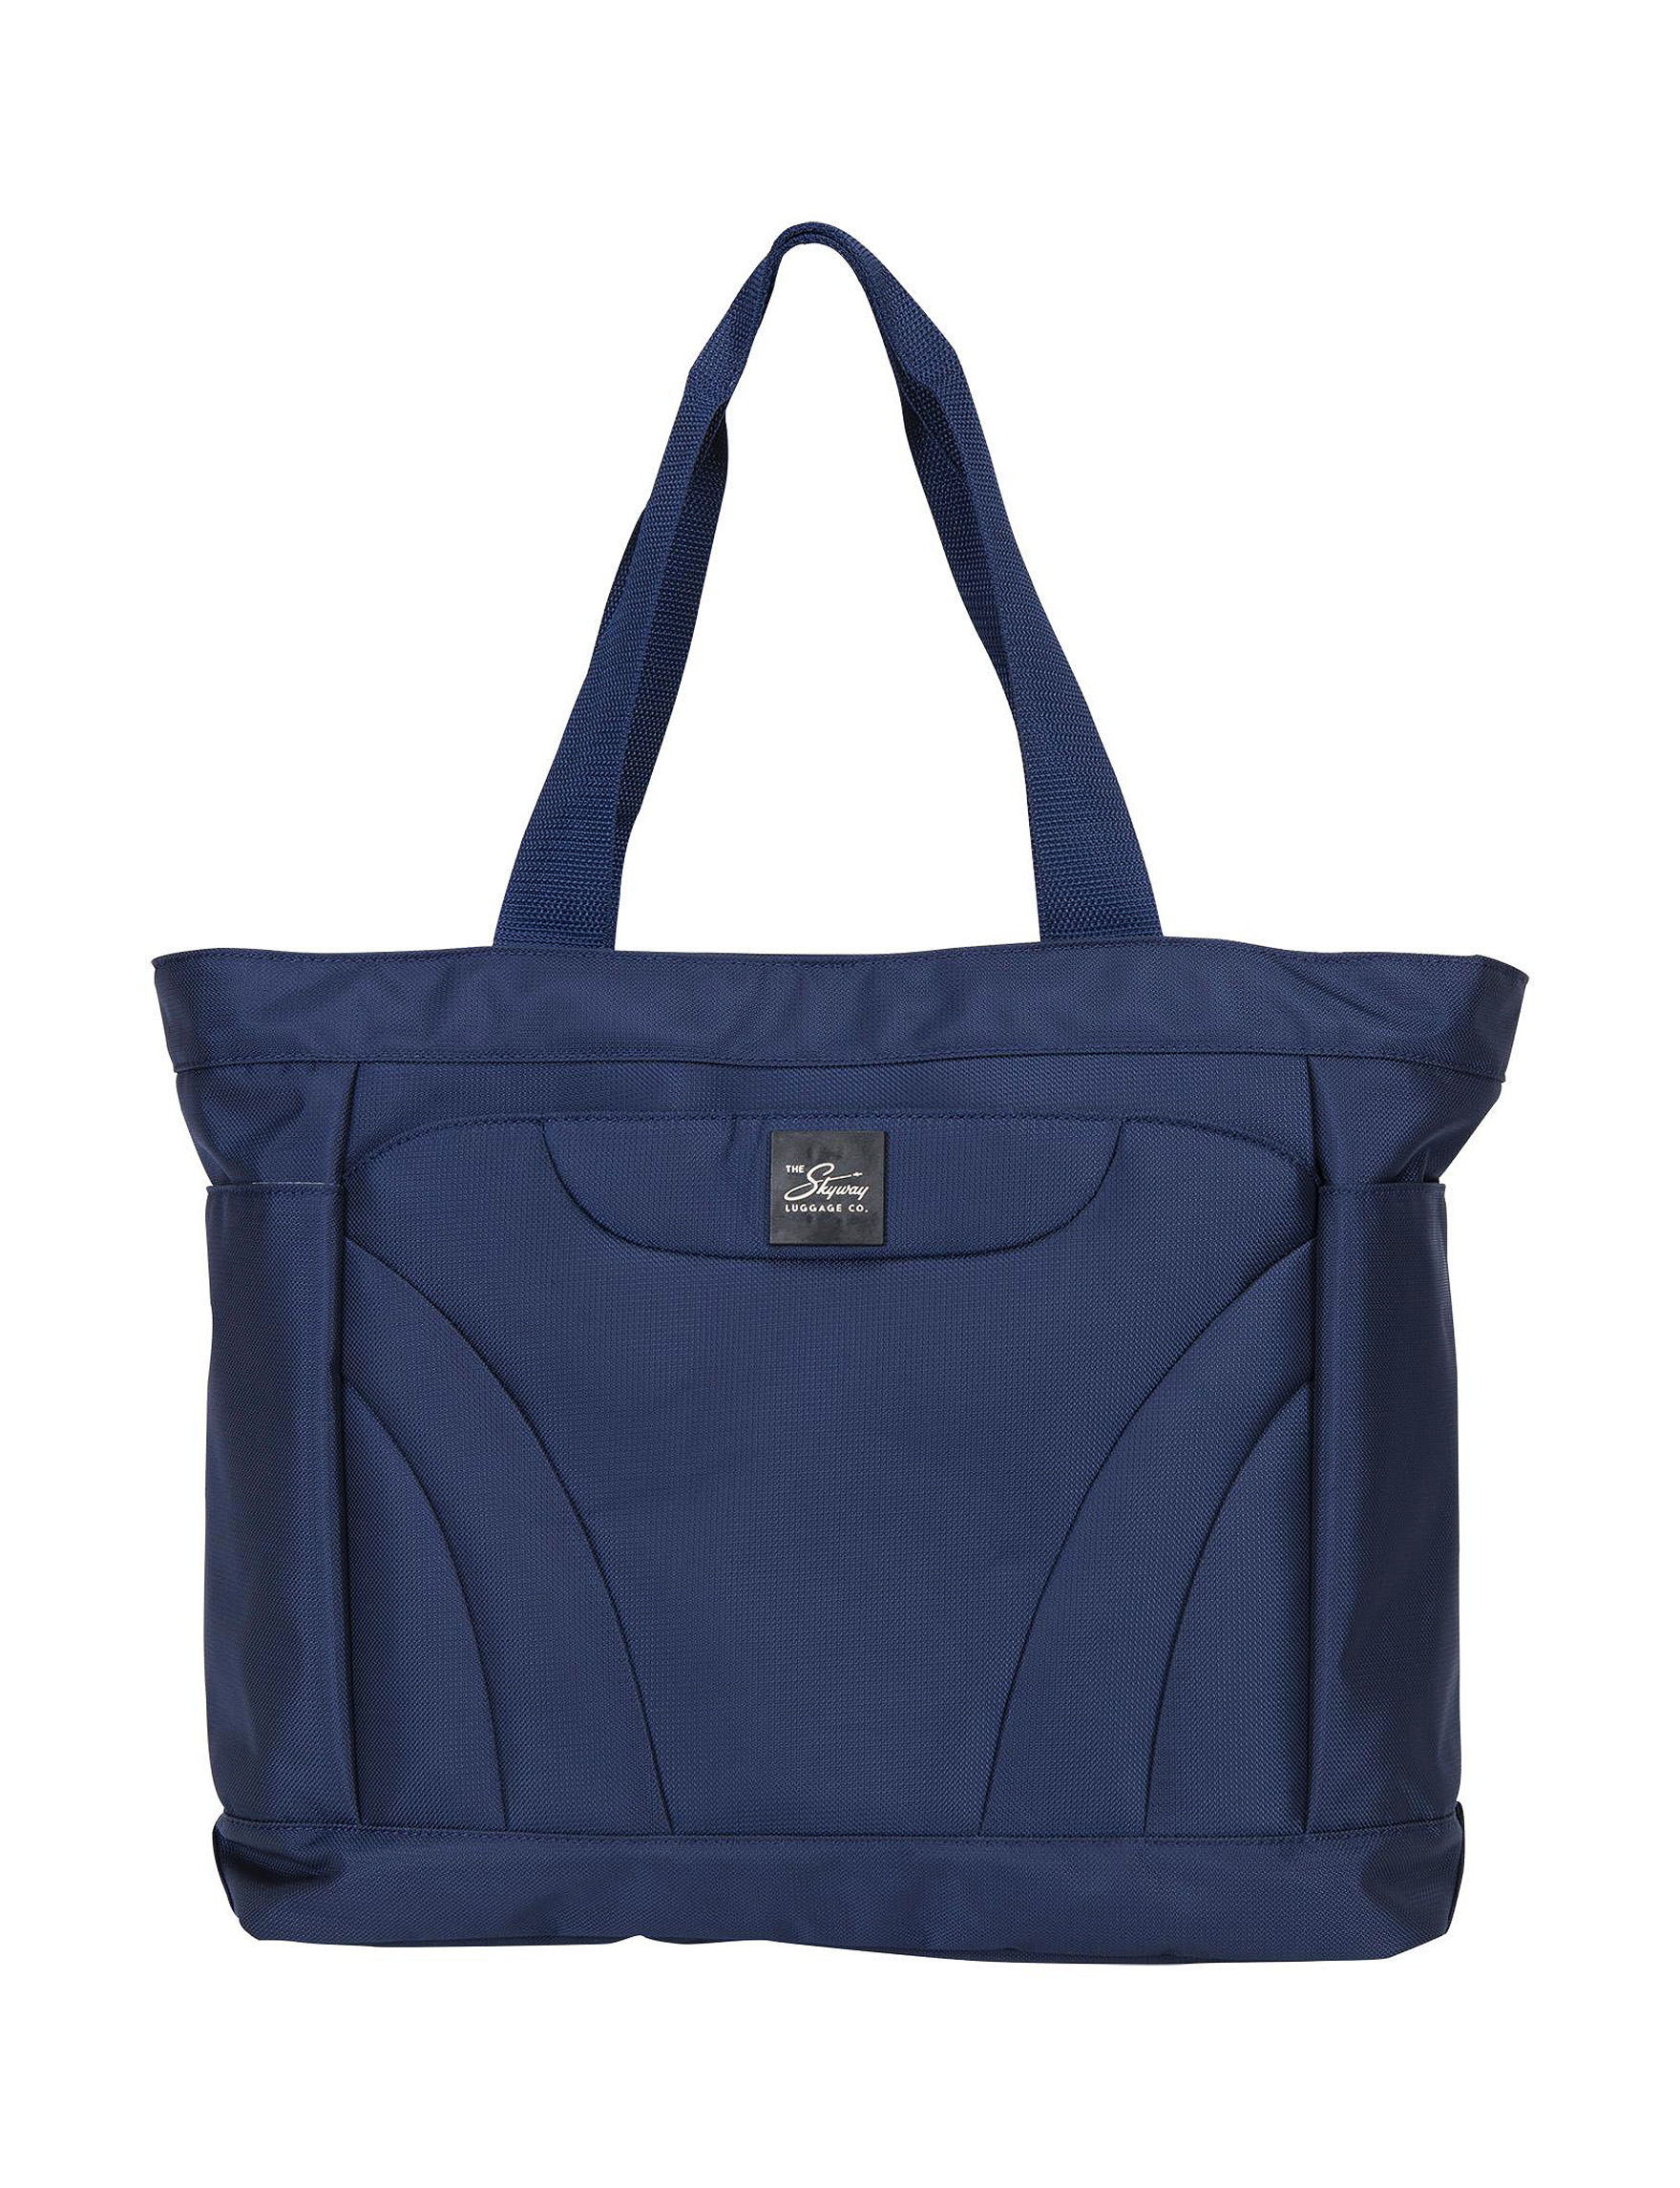 Skyway Blue Softside Carry On Luggage